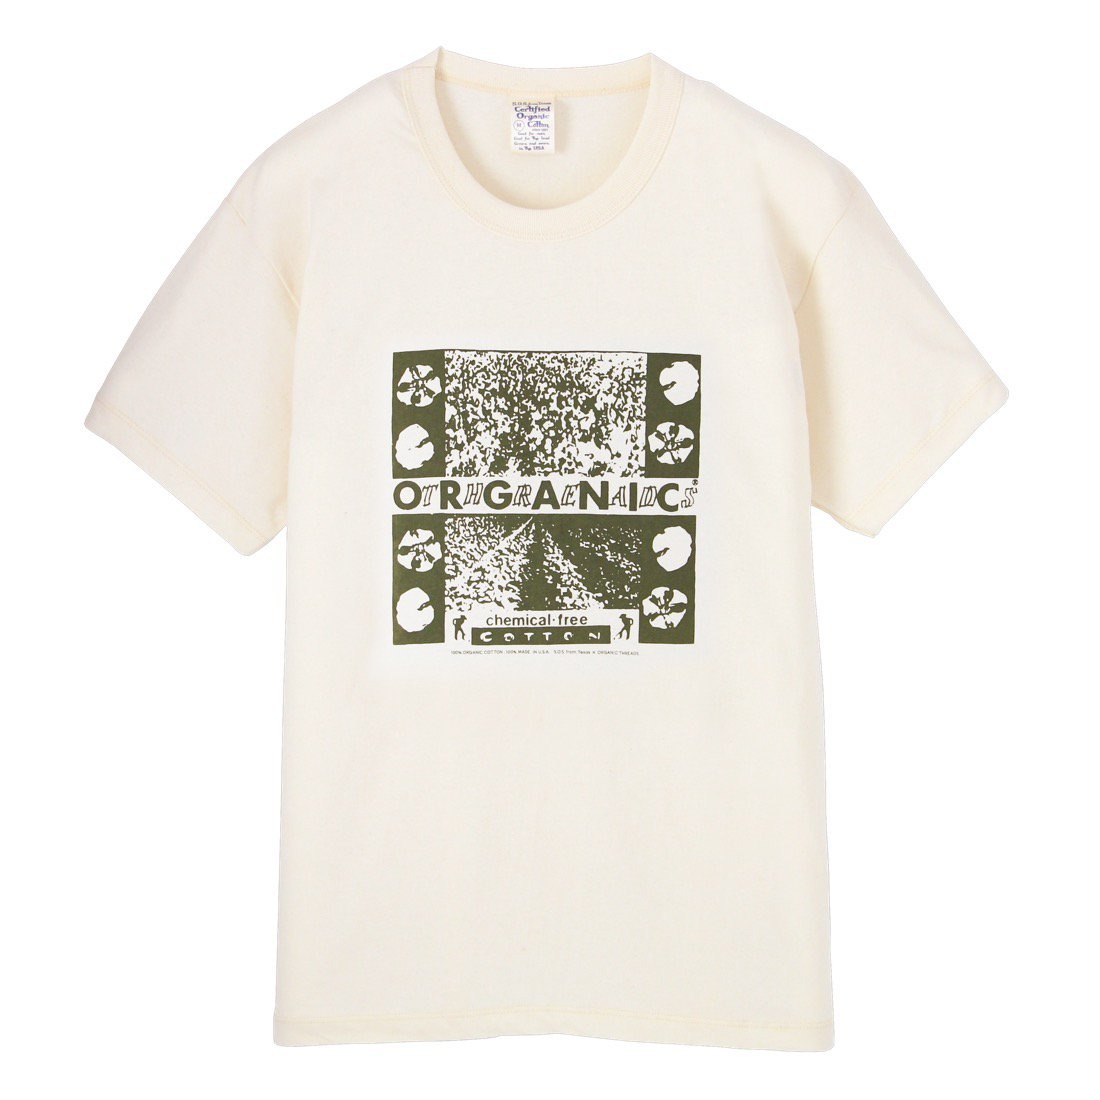 S.O.S. from Texas×ORGANIC THREADS Short Sleeve Crew Tee Green Printed